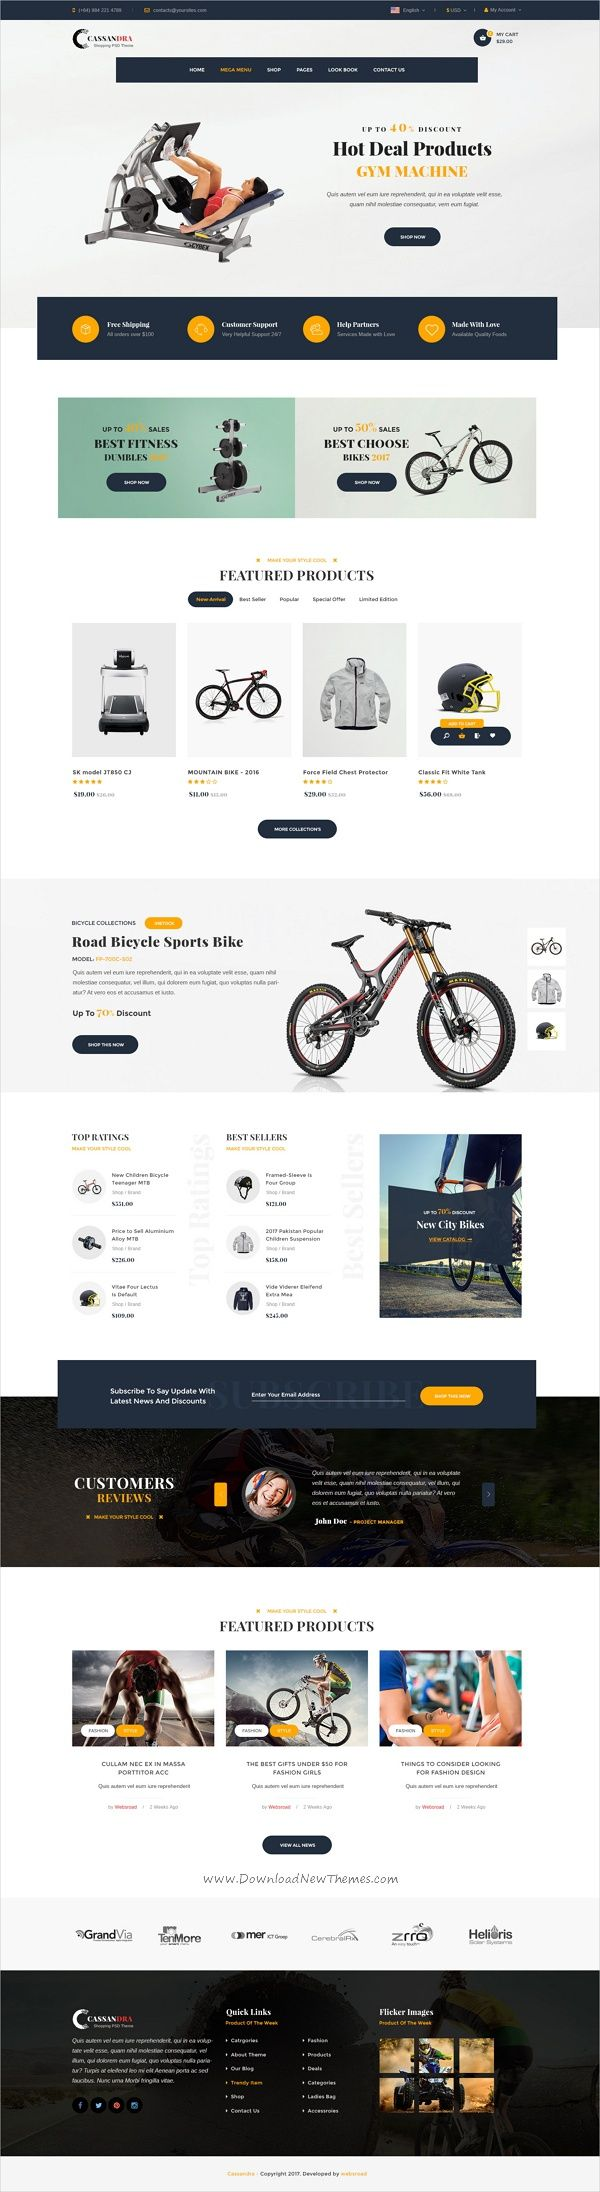 Cassandra is a clean and functional #PSD template for #fitness #sports #shop stunning eCommerce website with 62 organized PSD files download now➩ https://themeforest.net/item/cassandra-shopping-multipurpose-ecommerce-psd-template/19543637?ref=Datasata